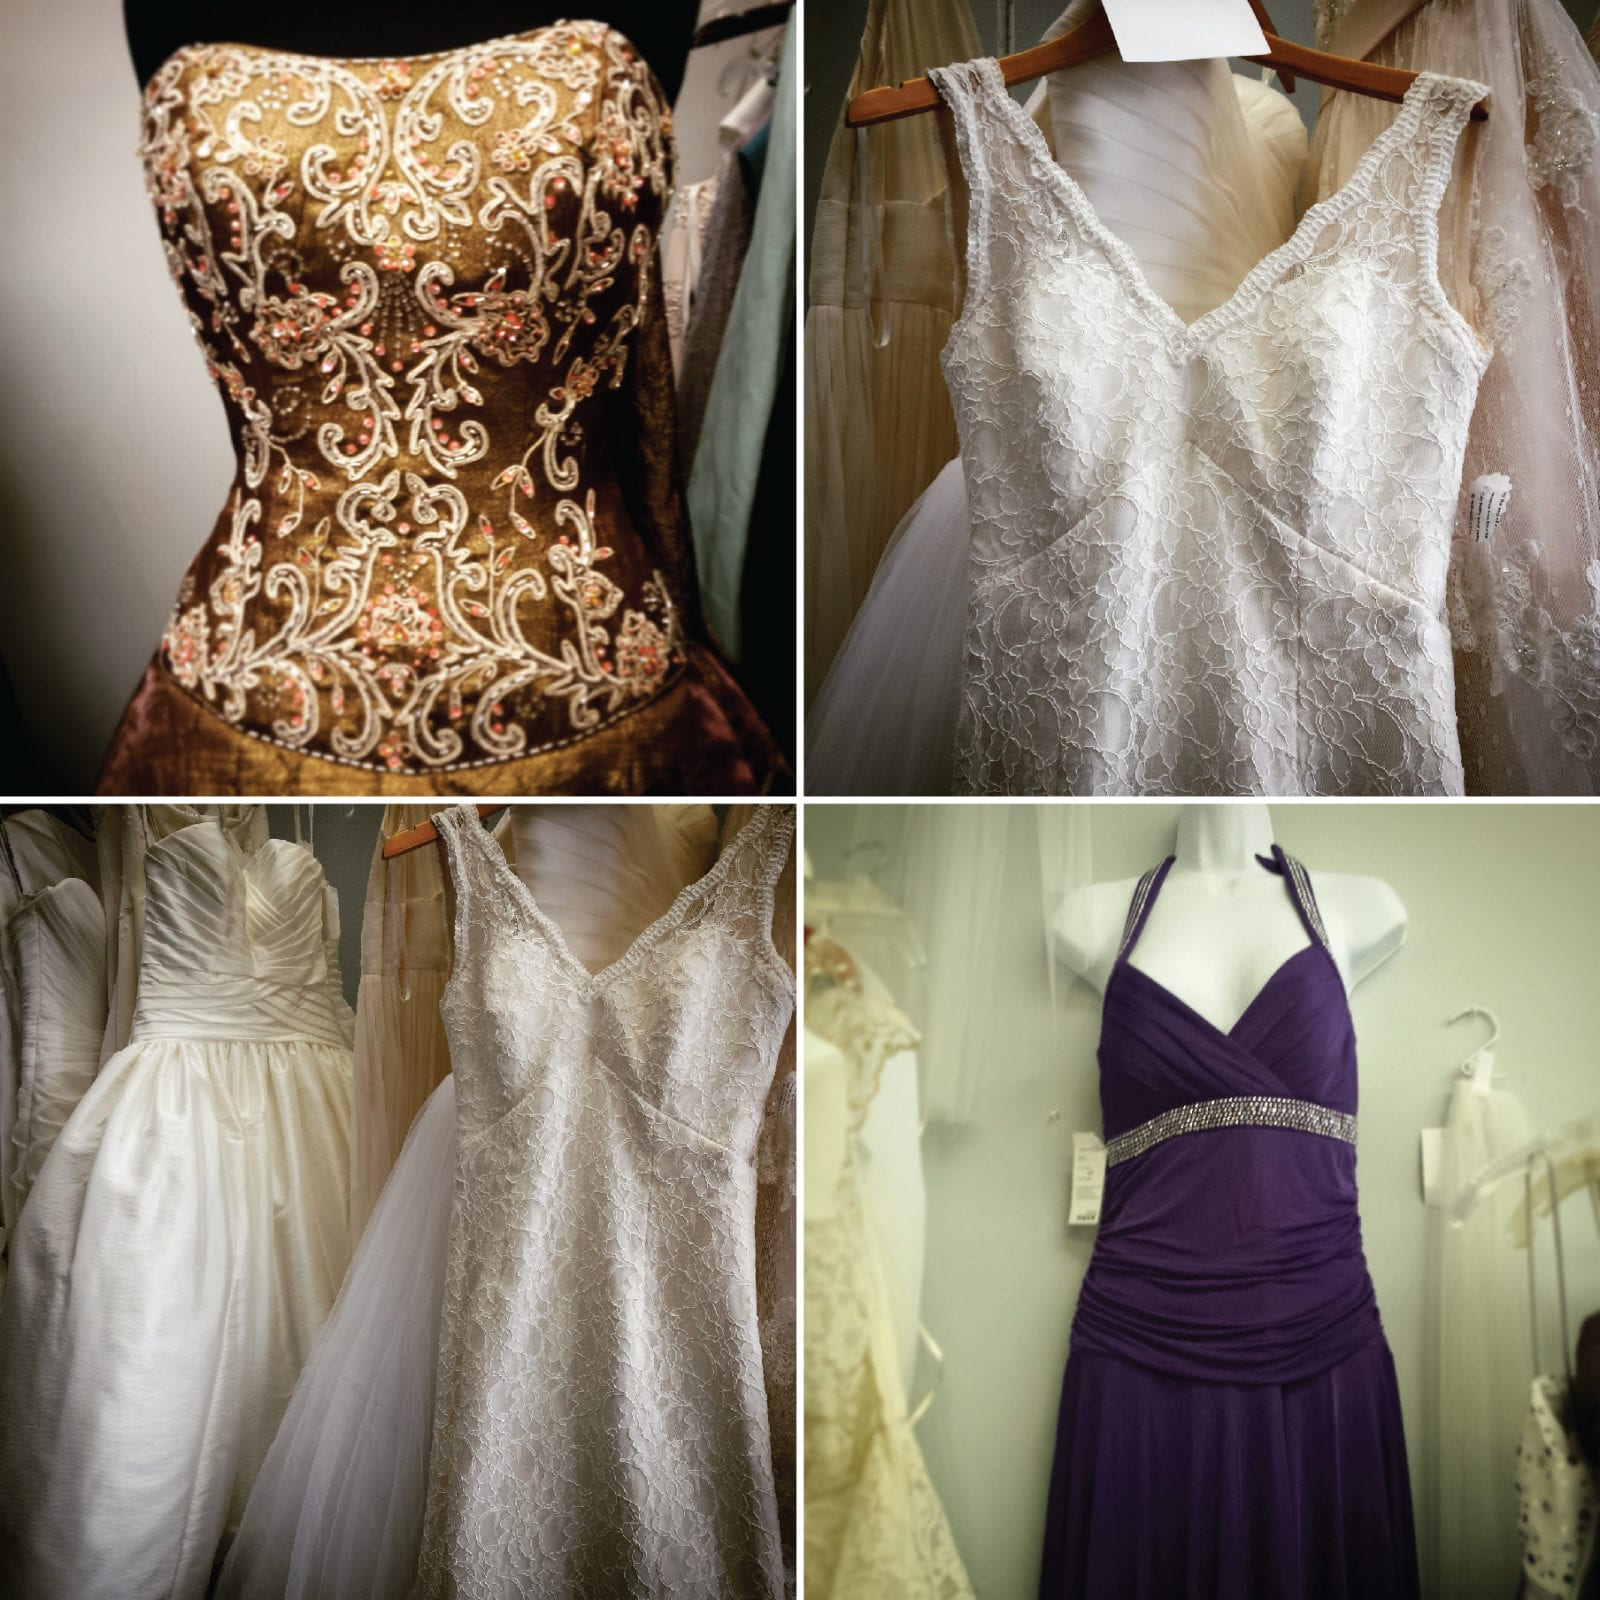 Bellingham, Bridal Gowns, Bridal Shop, Gown and Glove, Consignment, Prom Dresses